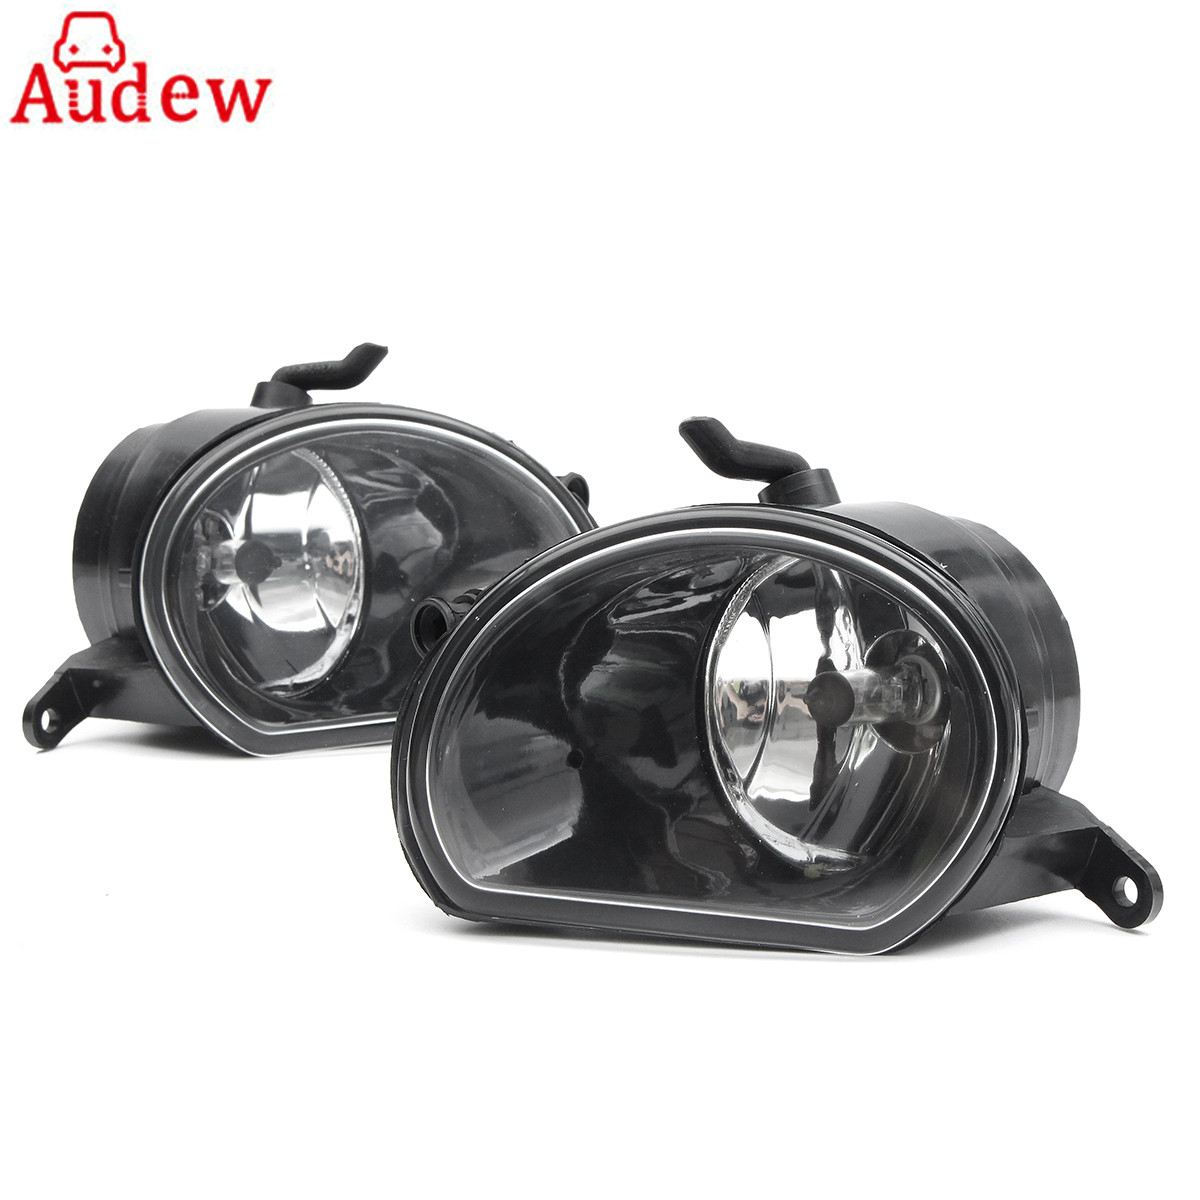 1 Pair Car Front Bumper LED H11 Fog Light Lamps Headlight Left&Right For AUDI Q7 2010 2011 2012 2013 2014 2015 2pcs pair front lower bumper fog light fog lamps left